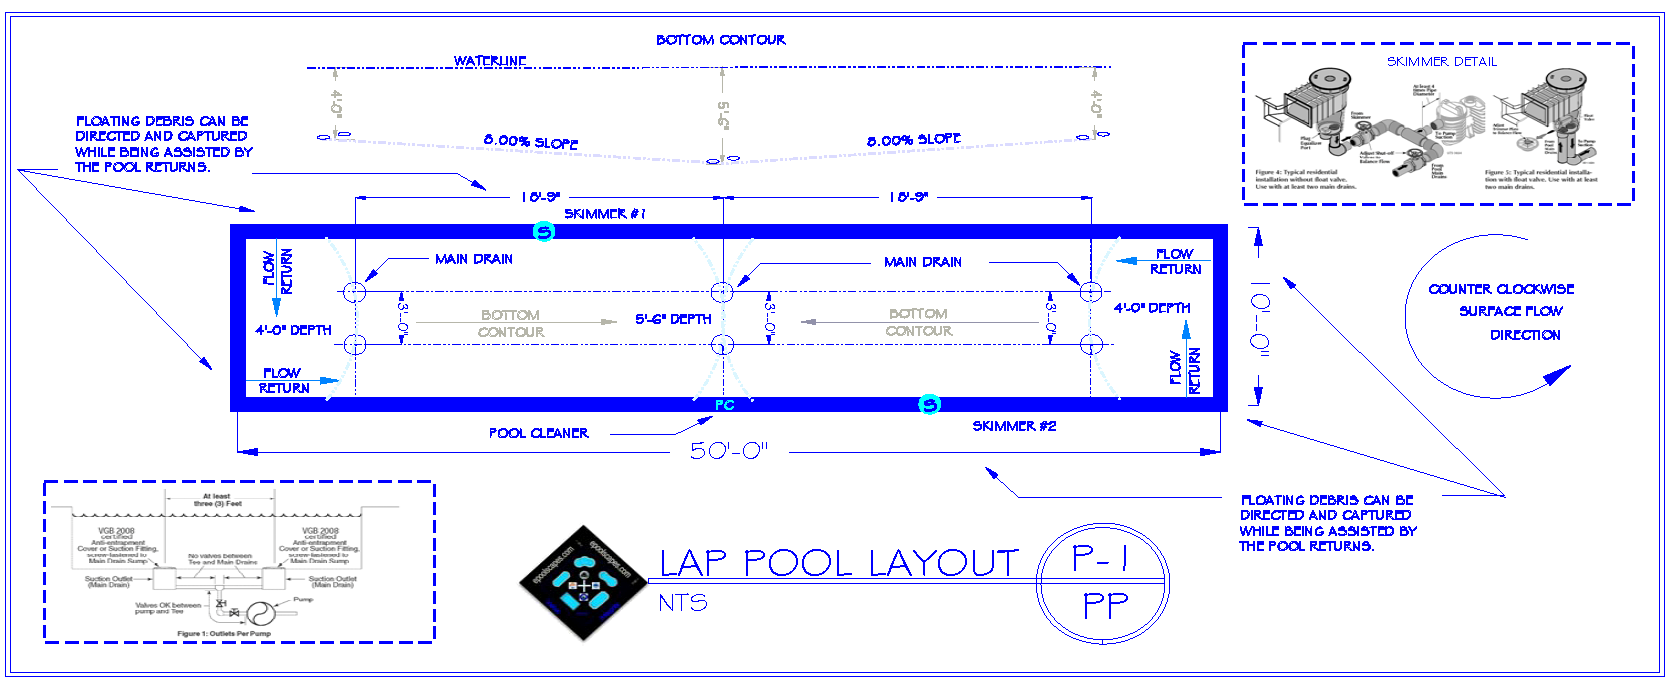 Lap pool photos images concepts 800 766 5259 - Swimming pool size ...